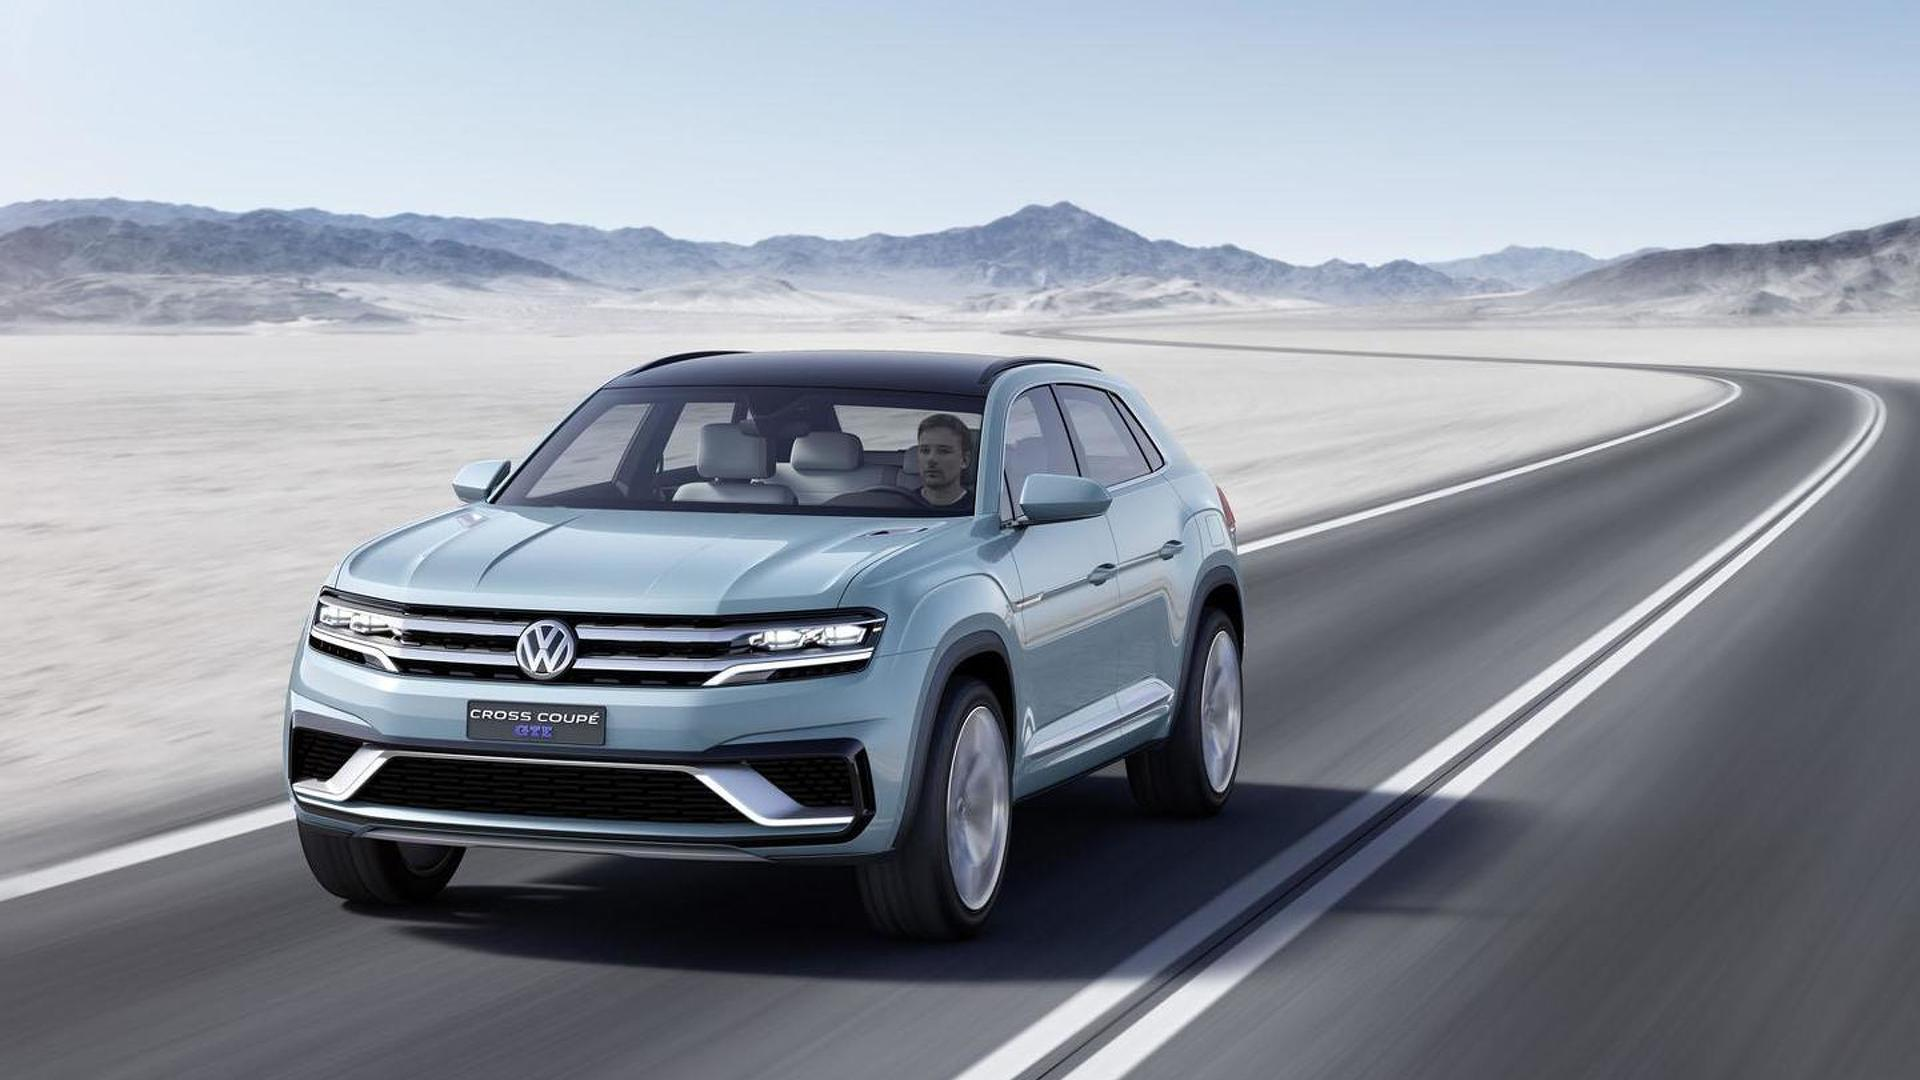 Vw Cross Coupe Gte Release Date >> Vw Allegedly Preparing Tiguan Coupe For 2018